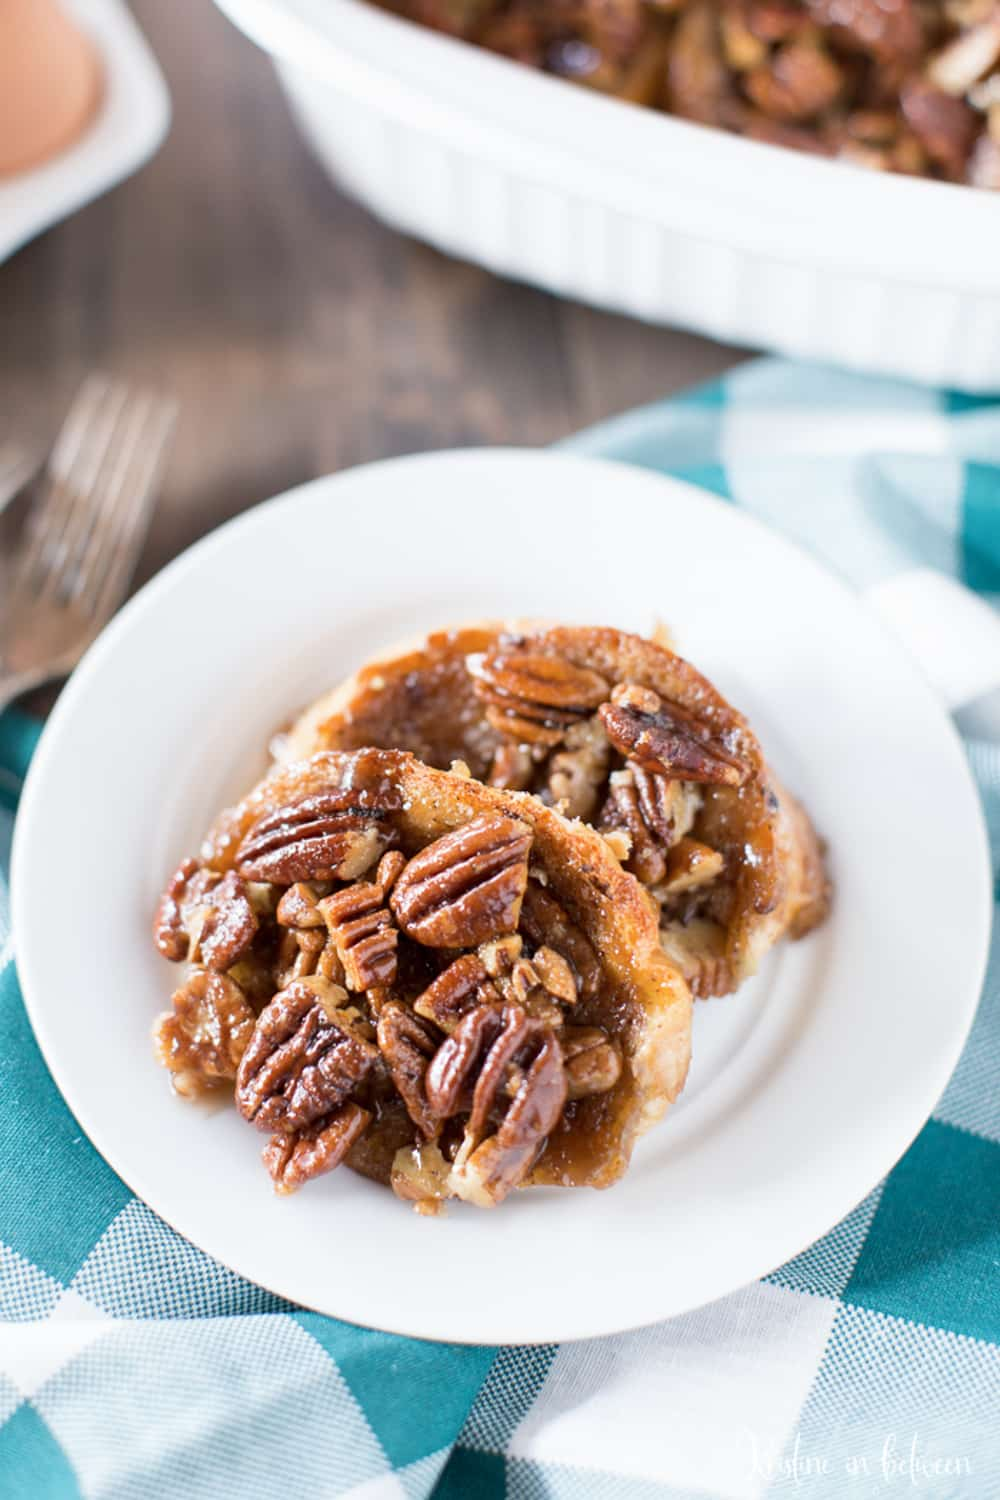 15 Delicious Recipes That Take French Toast to the Next Level: Pecan Caramel French Toast Bake